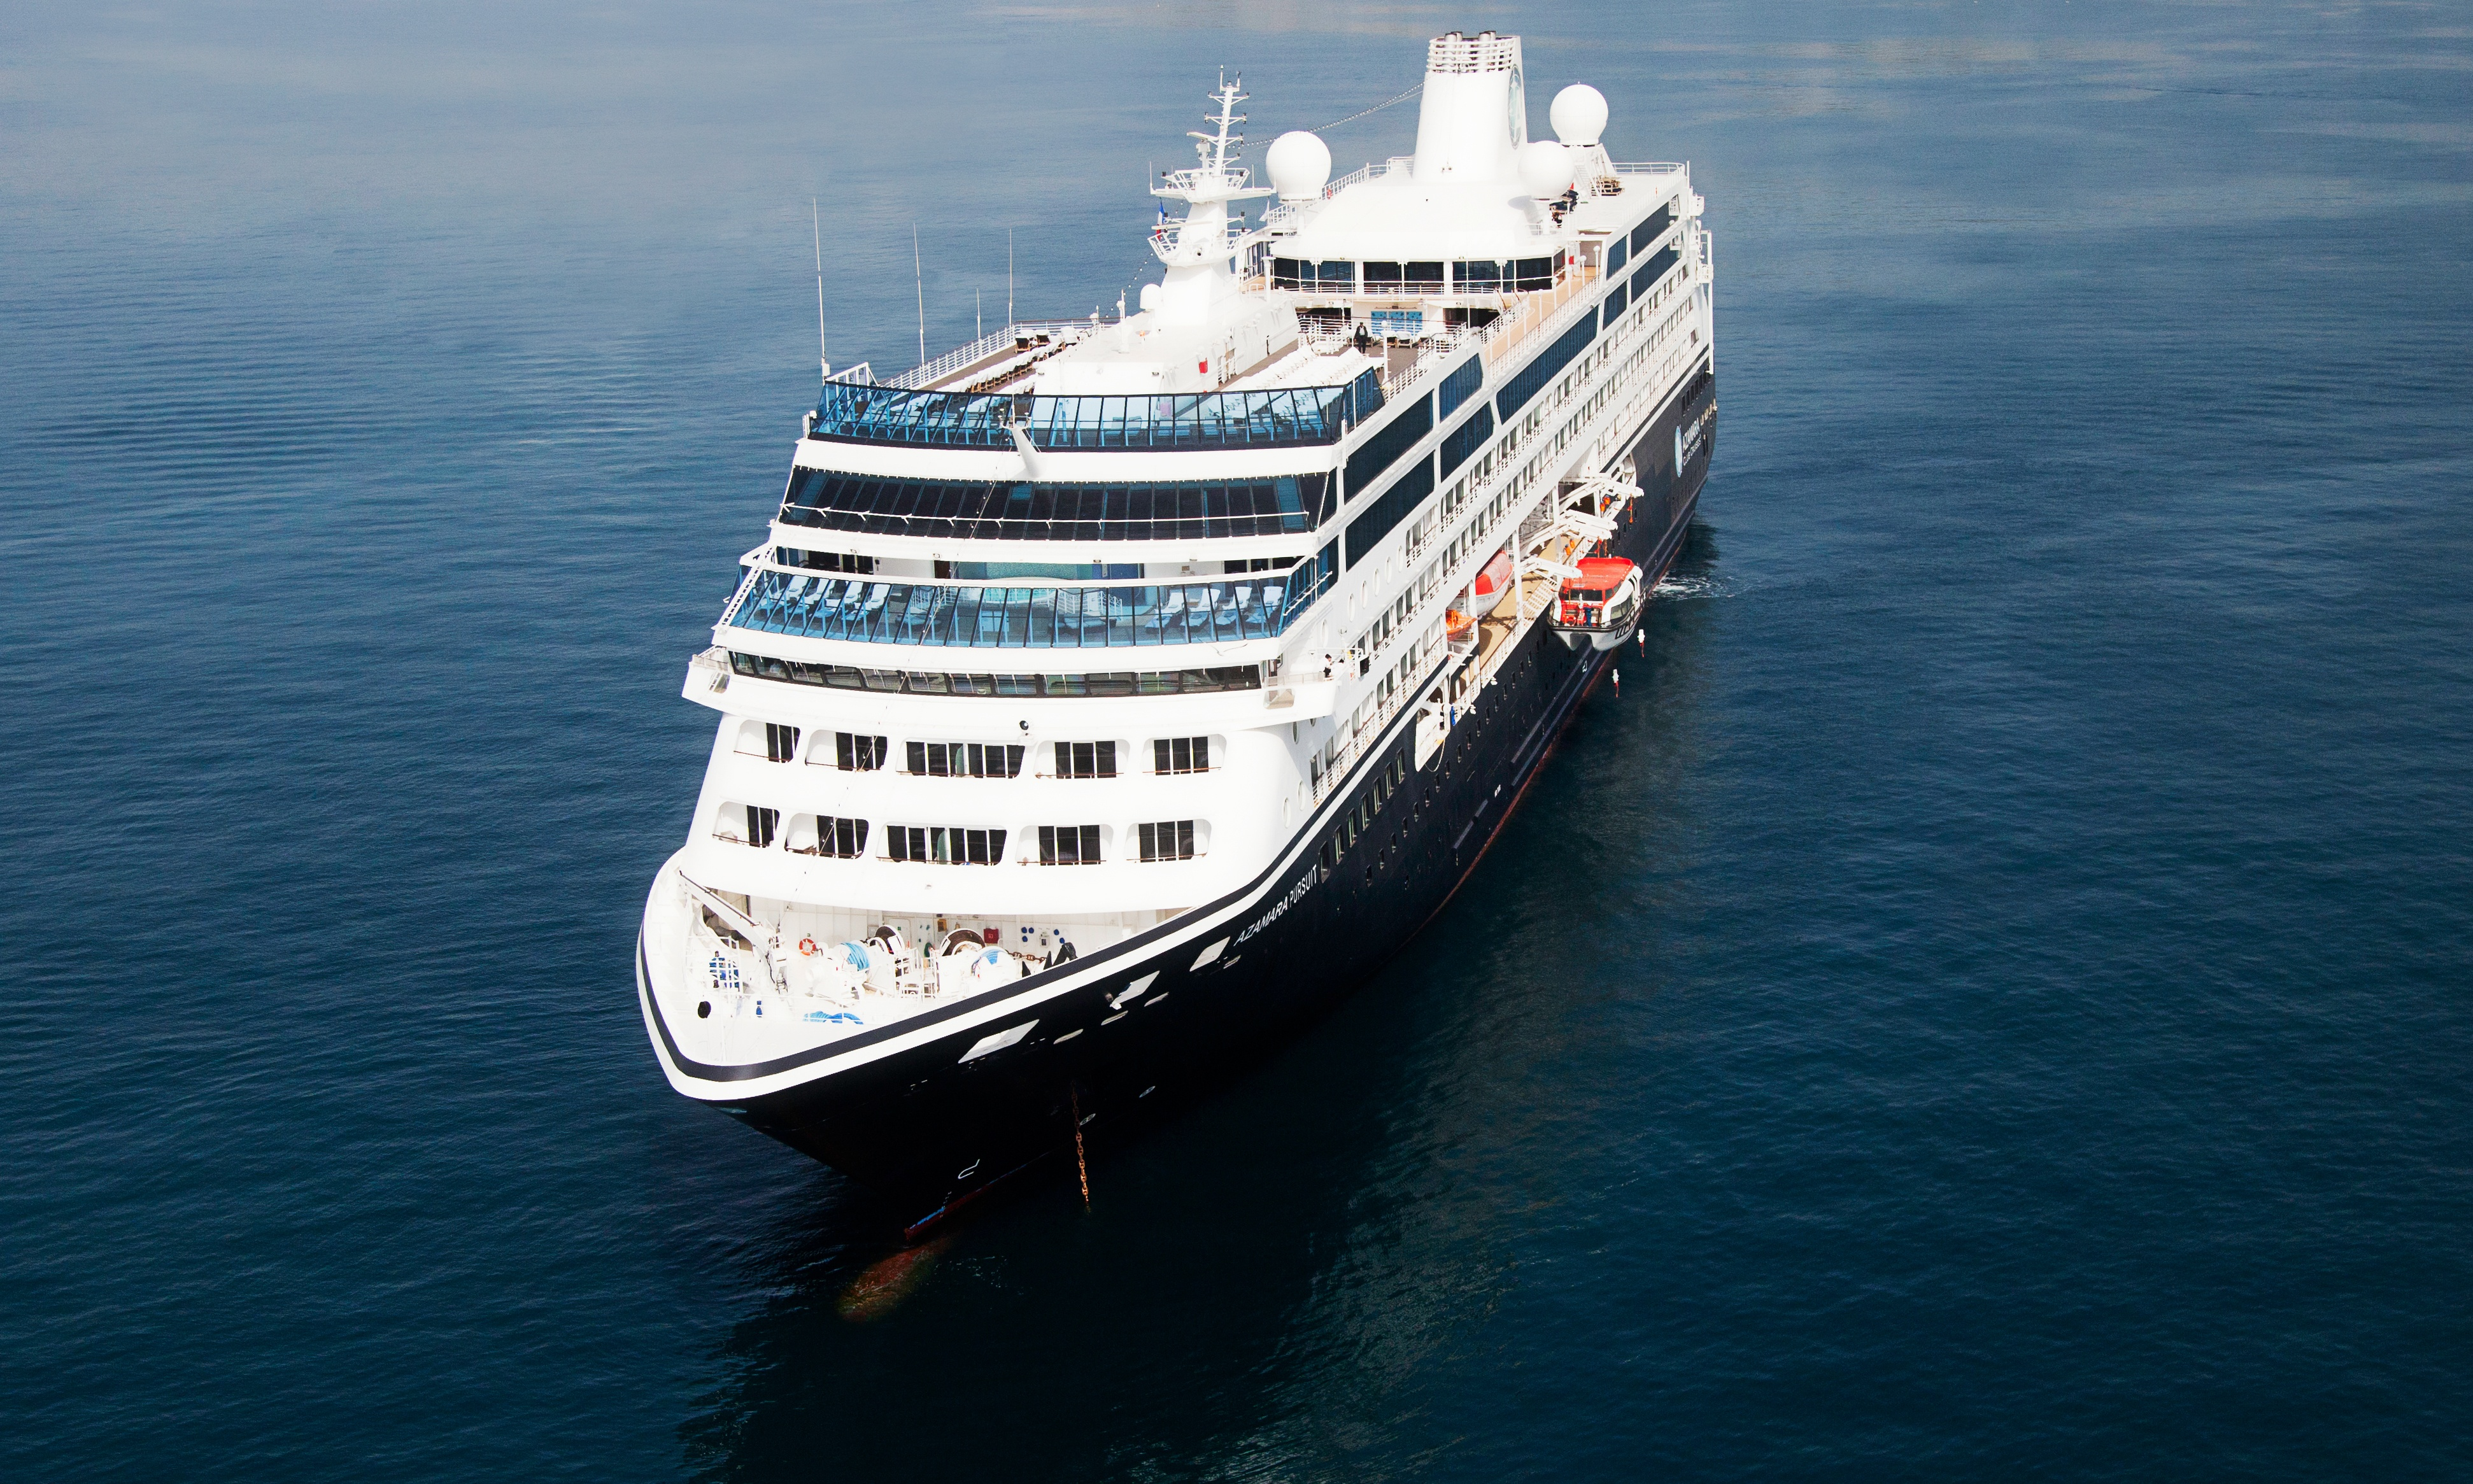 Eastern Mediterranean Cruise with Azamara Pursuit on 29/06/2019